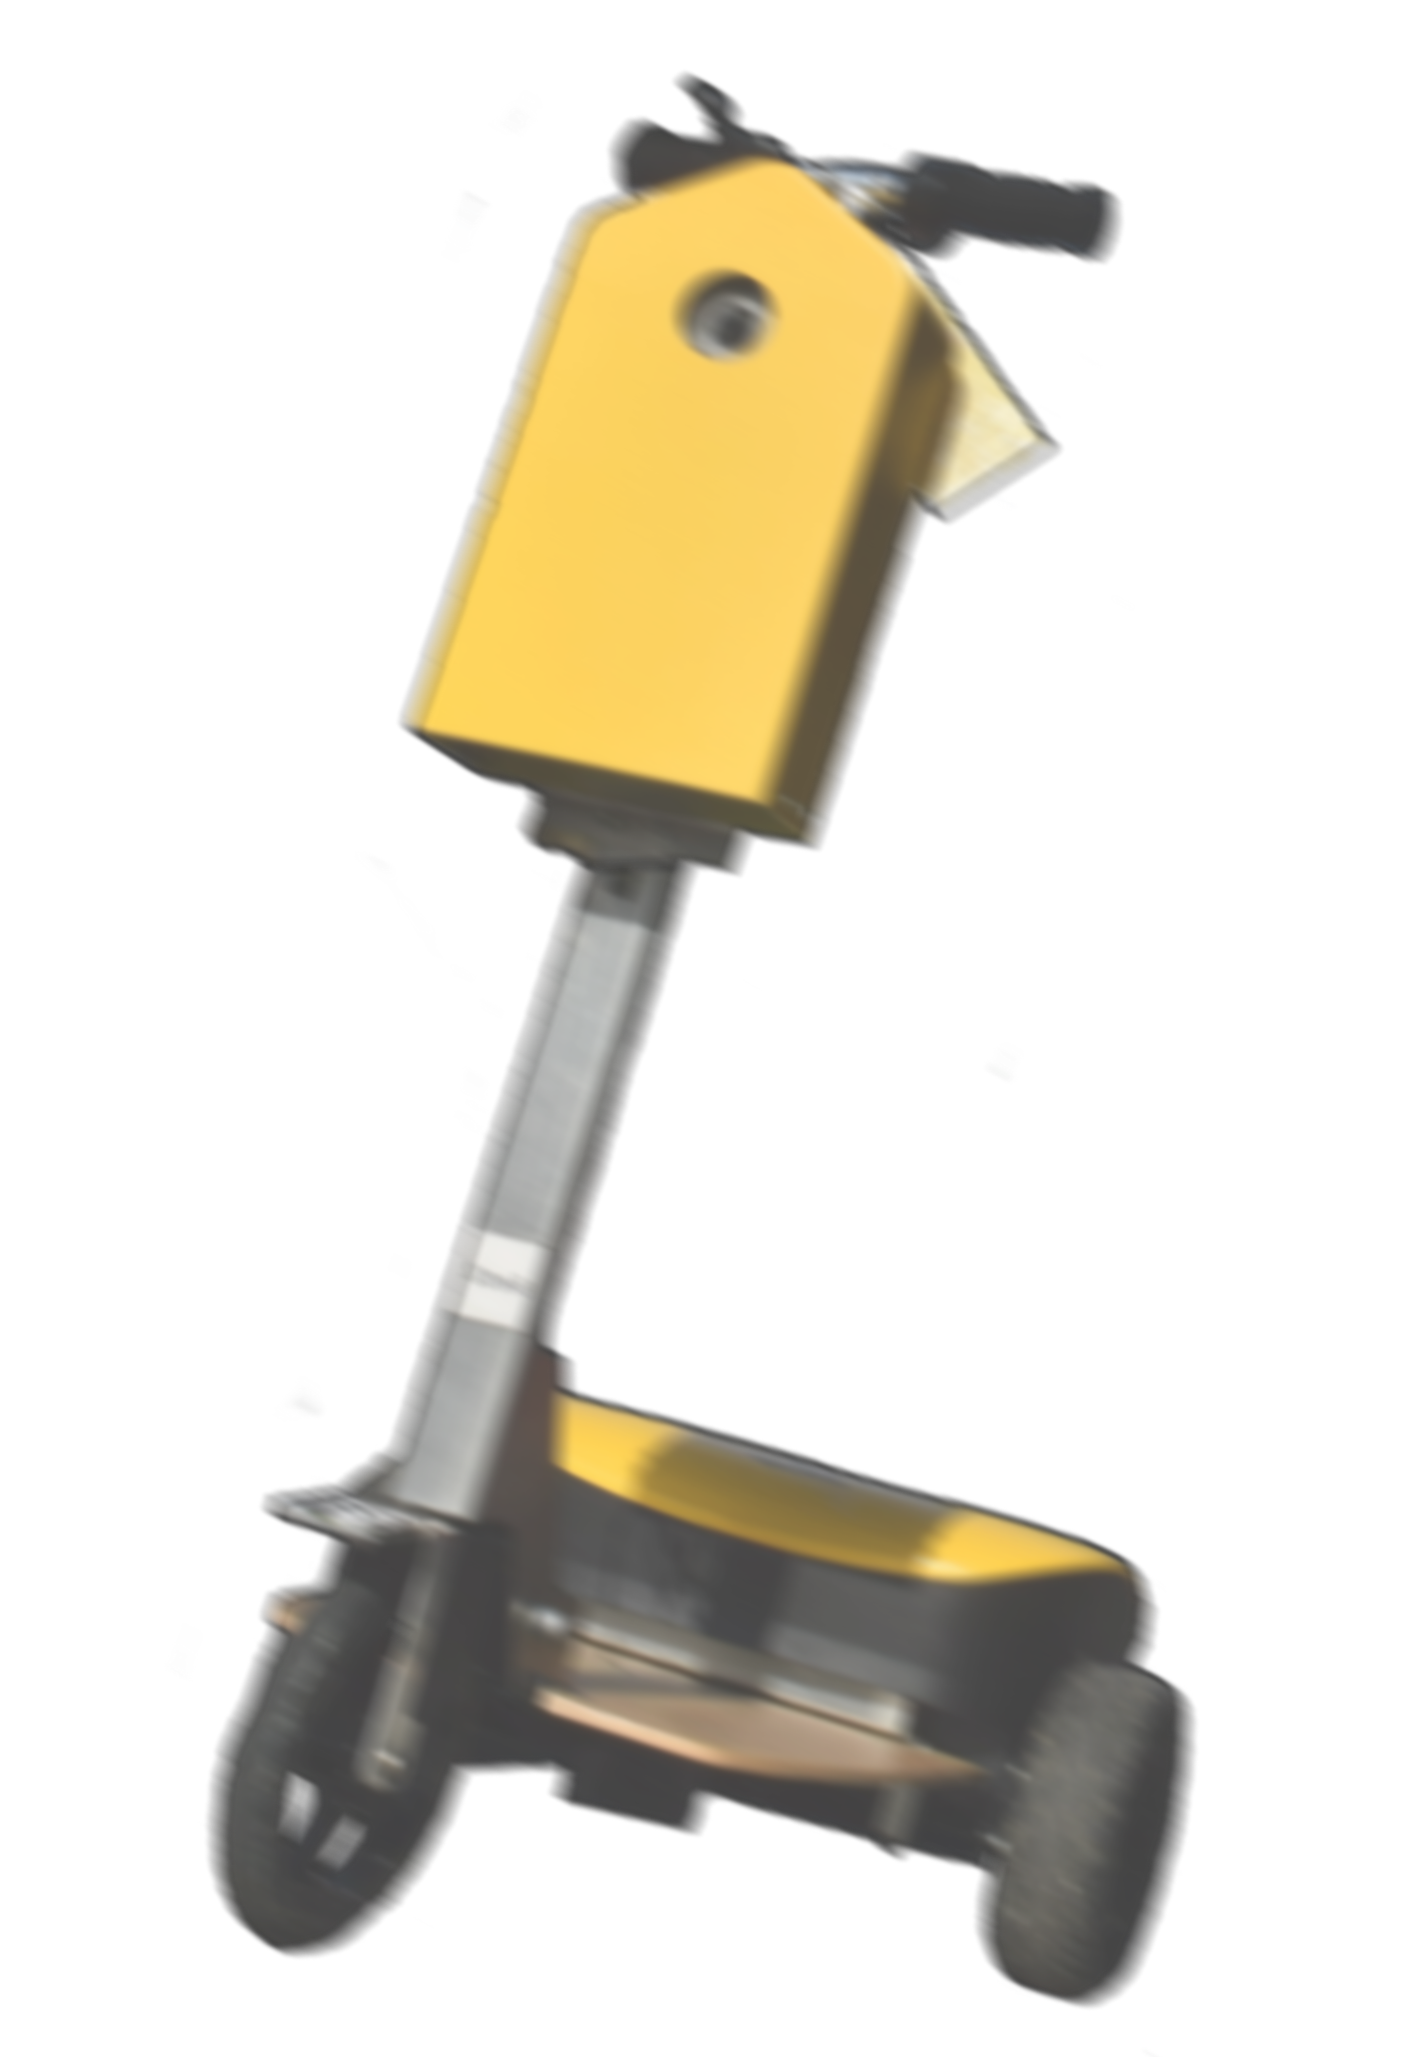 scootbee.png